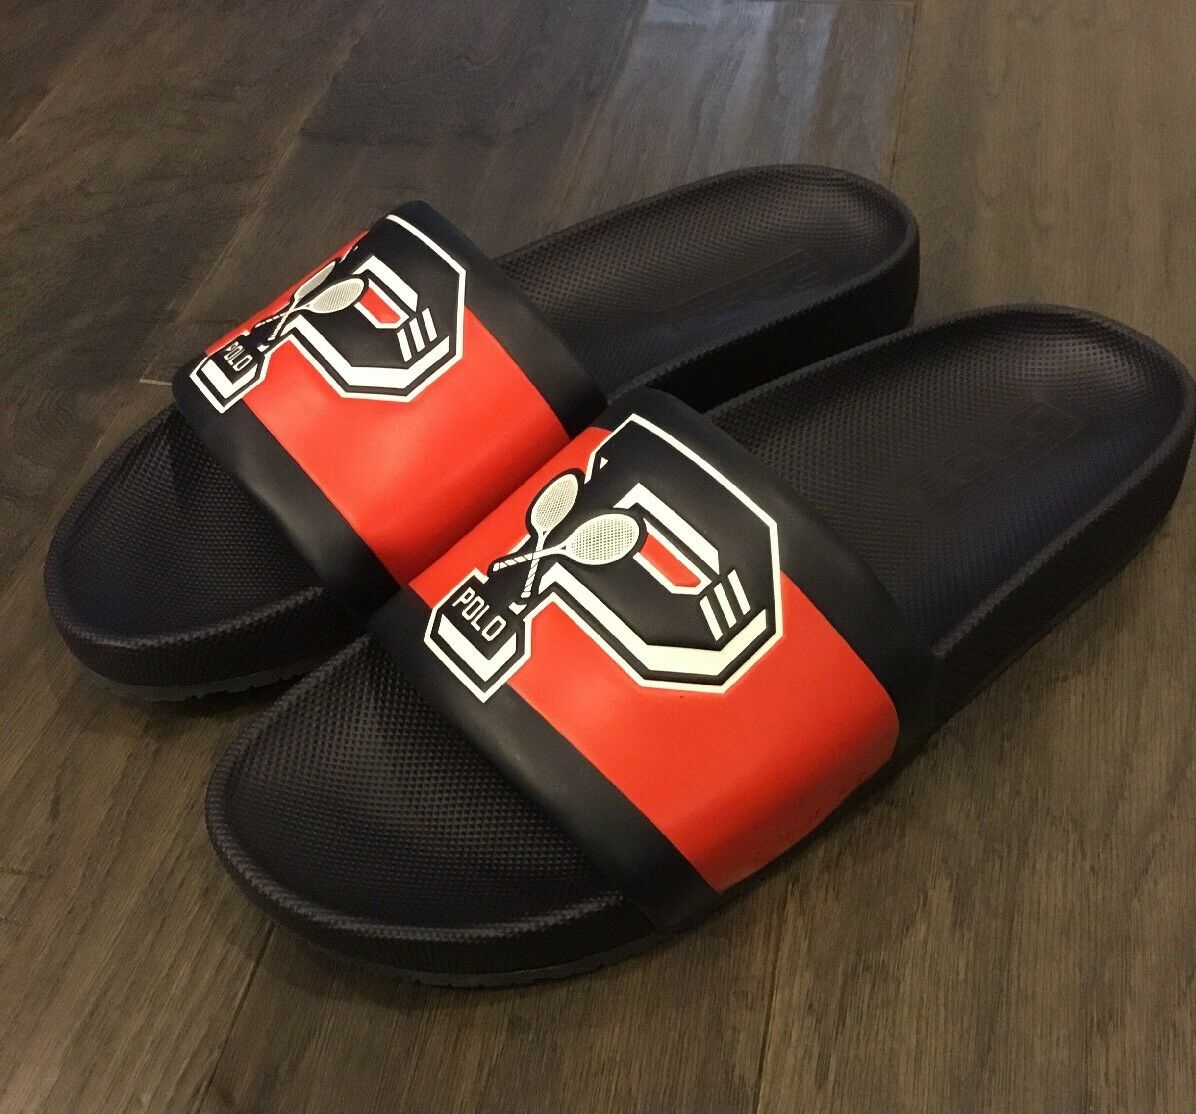 Polo Ralph Lauren US Open Cayson Slide slides shoes new men's sandals Size 9